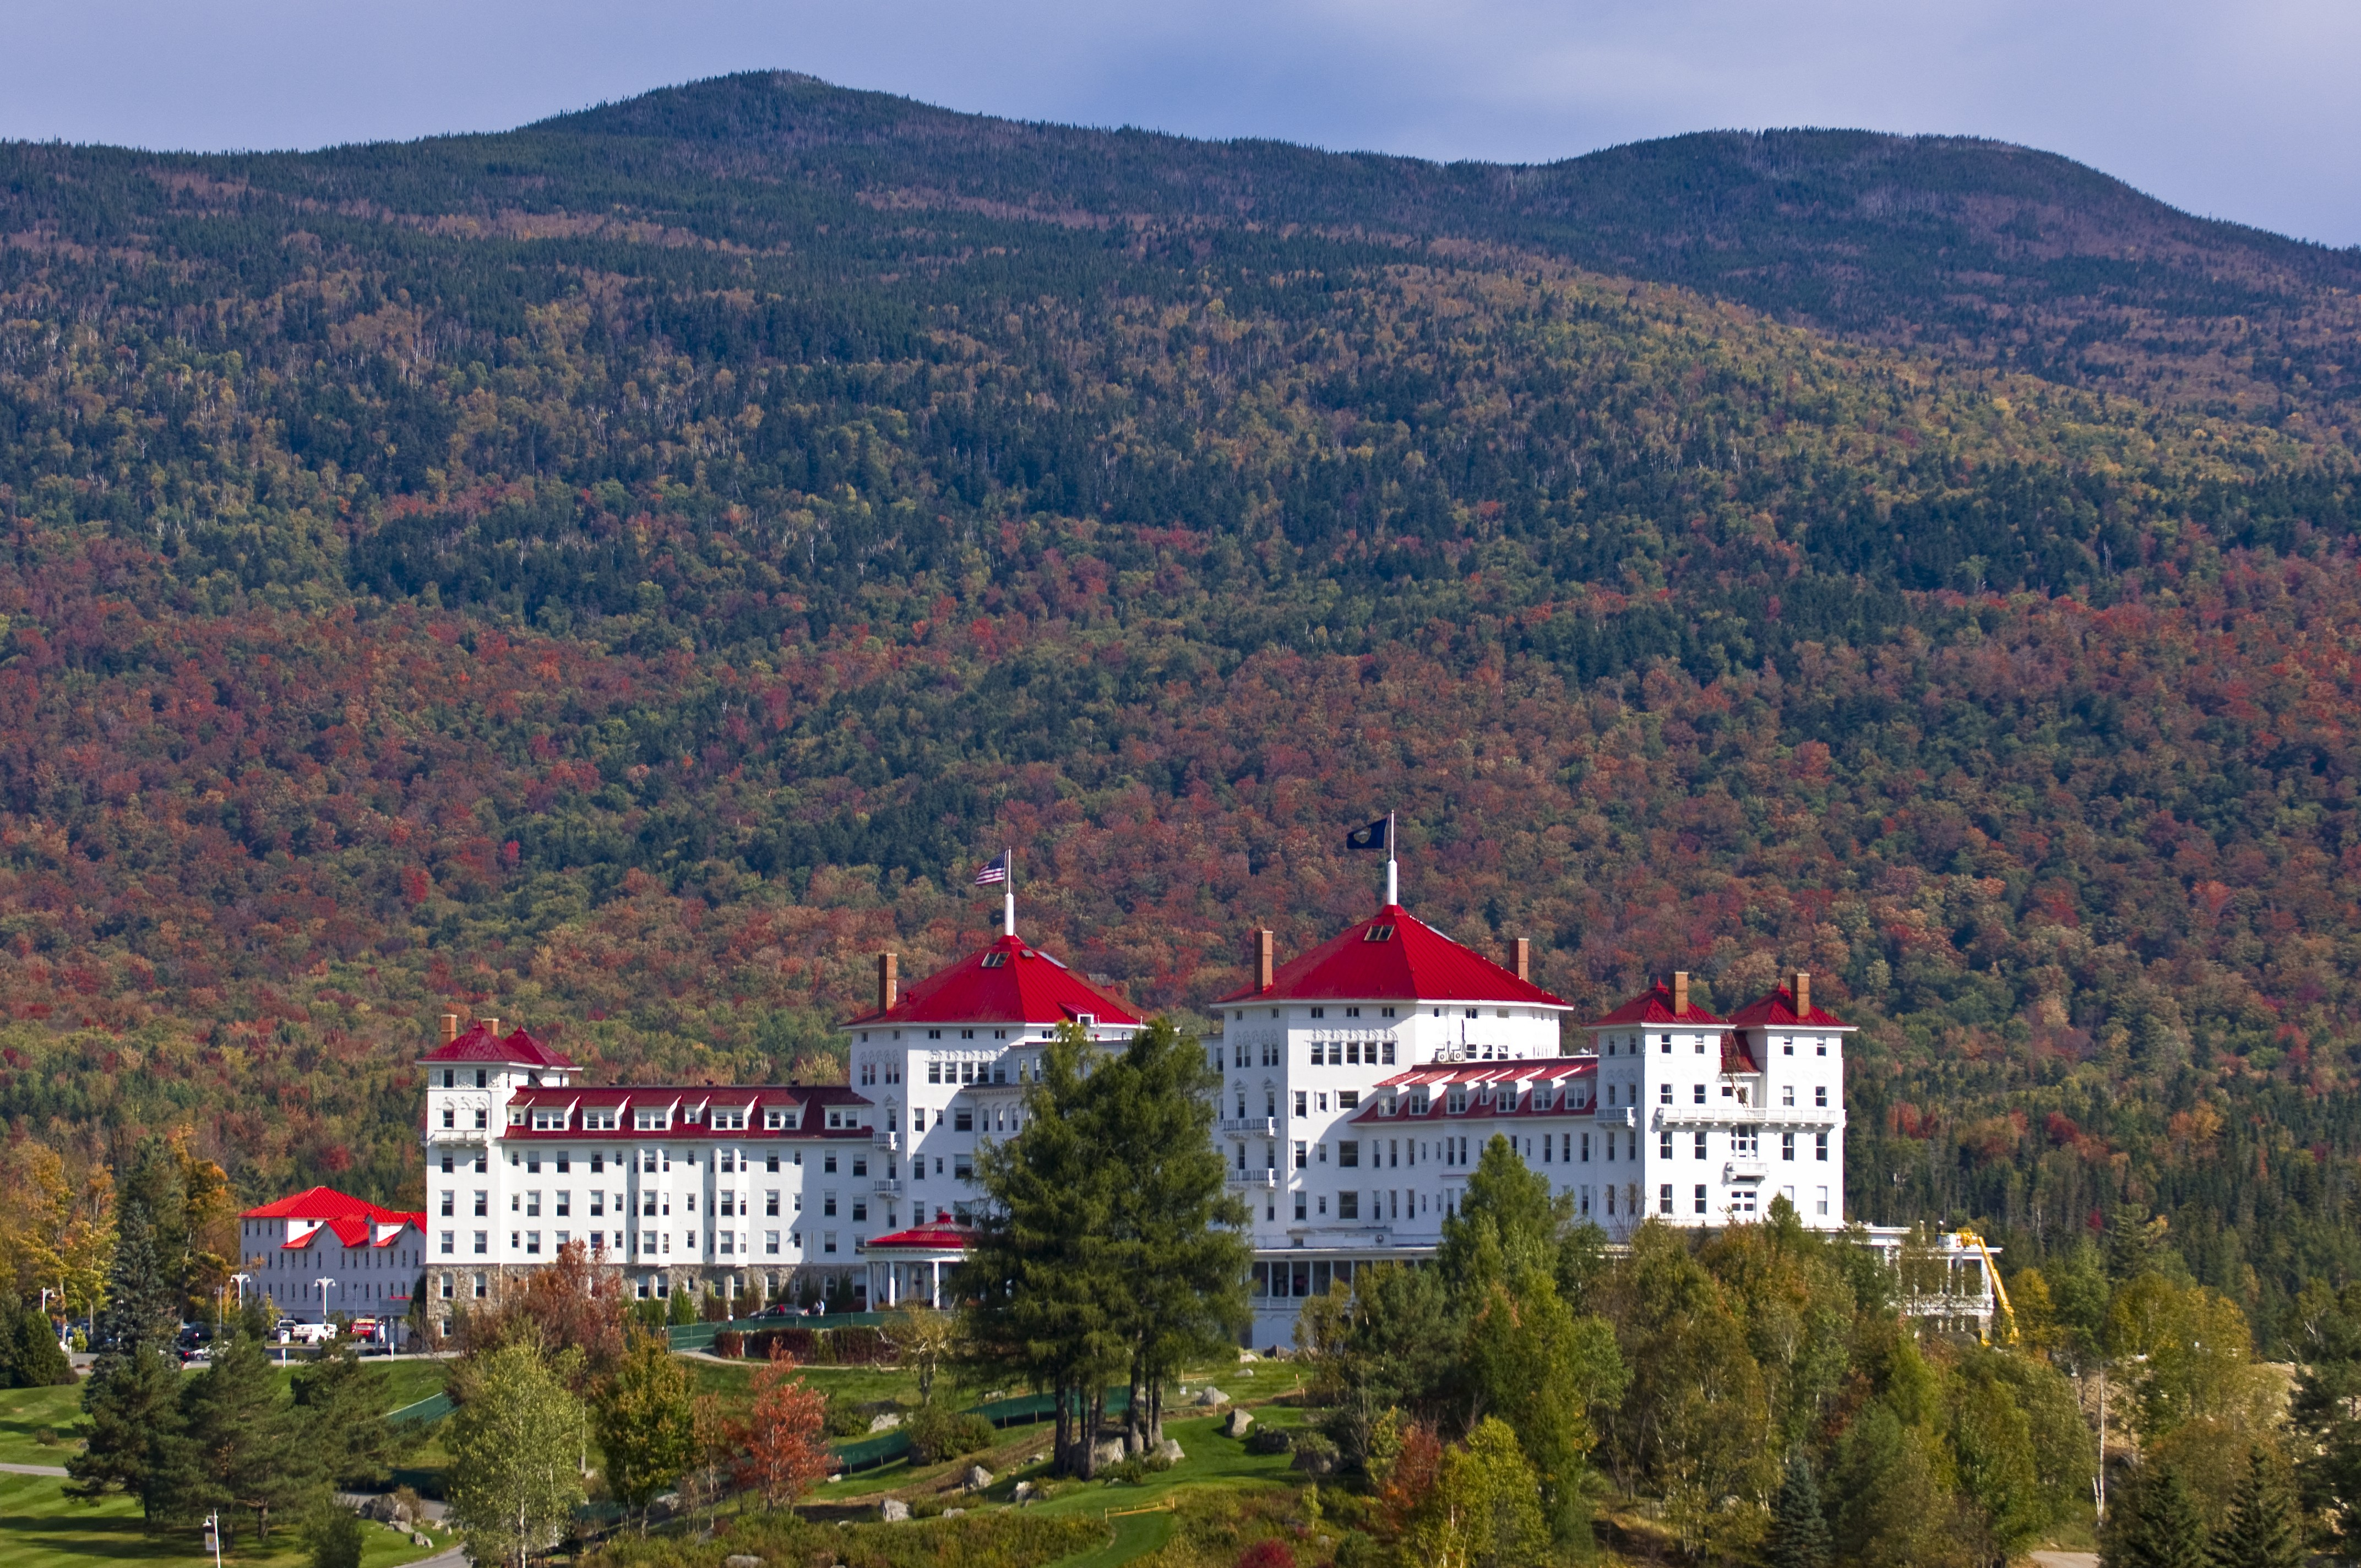 Omni Mount Washington- Image 145.jpg